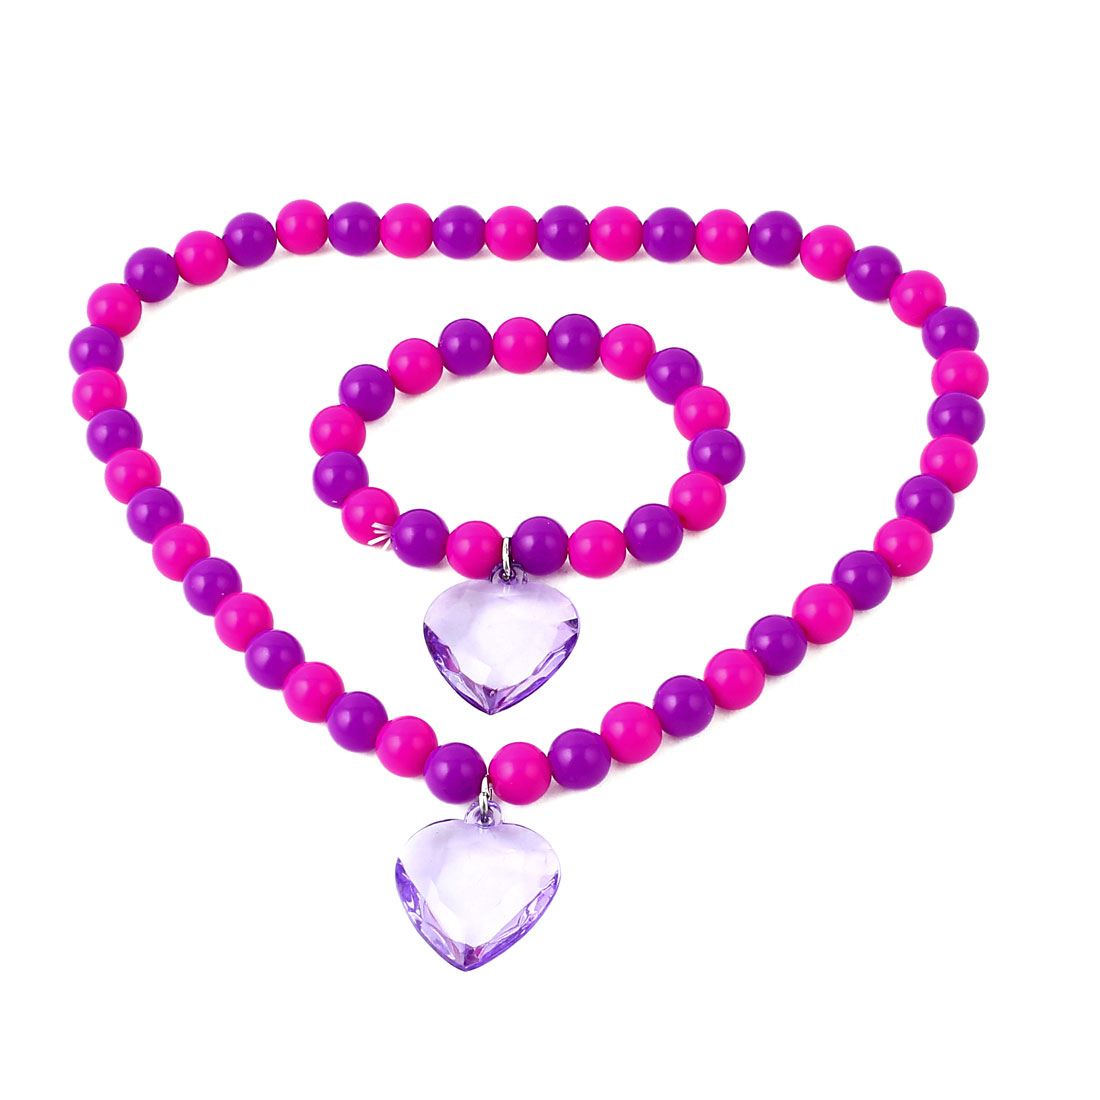 Purple Fuchsia Stretchy Heart Shaped Pendant Beads Necklace w Bracelet for Lady